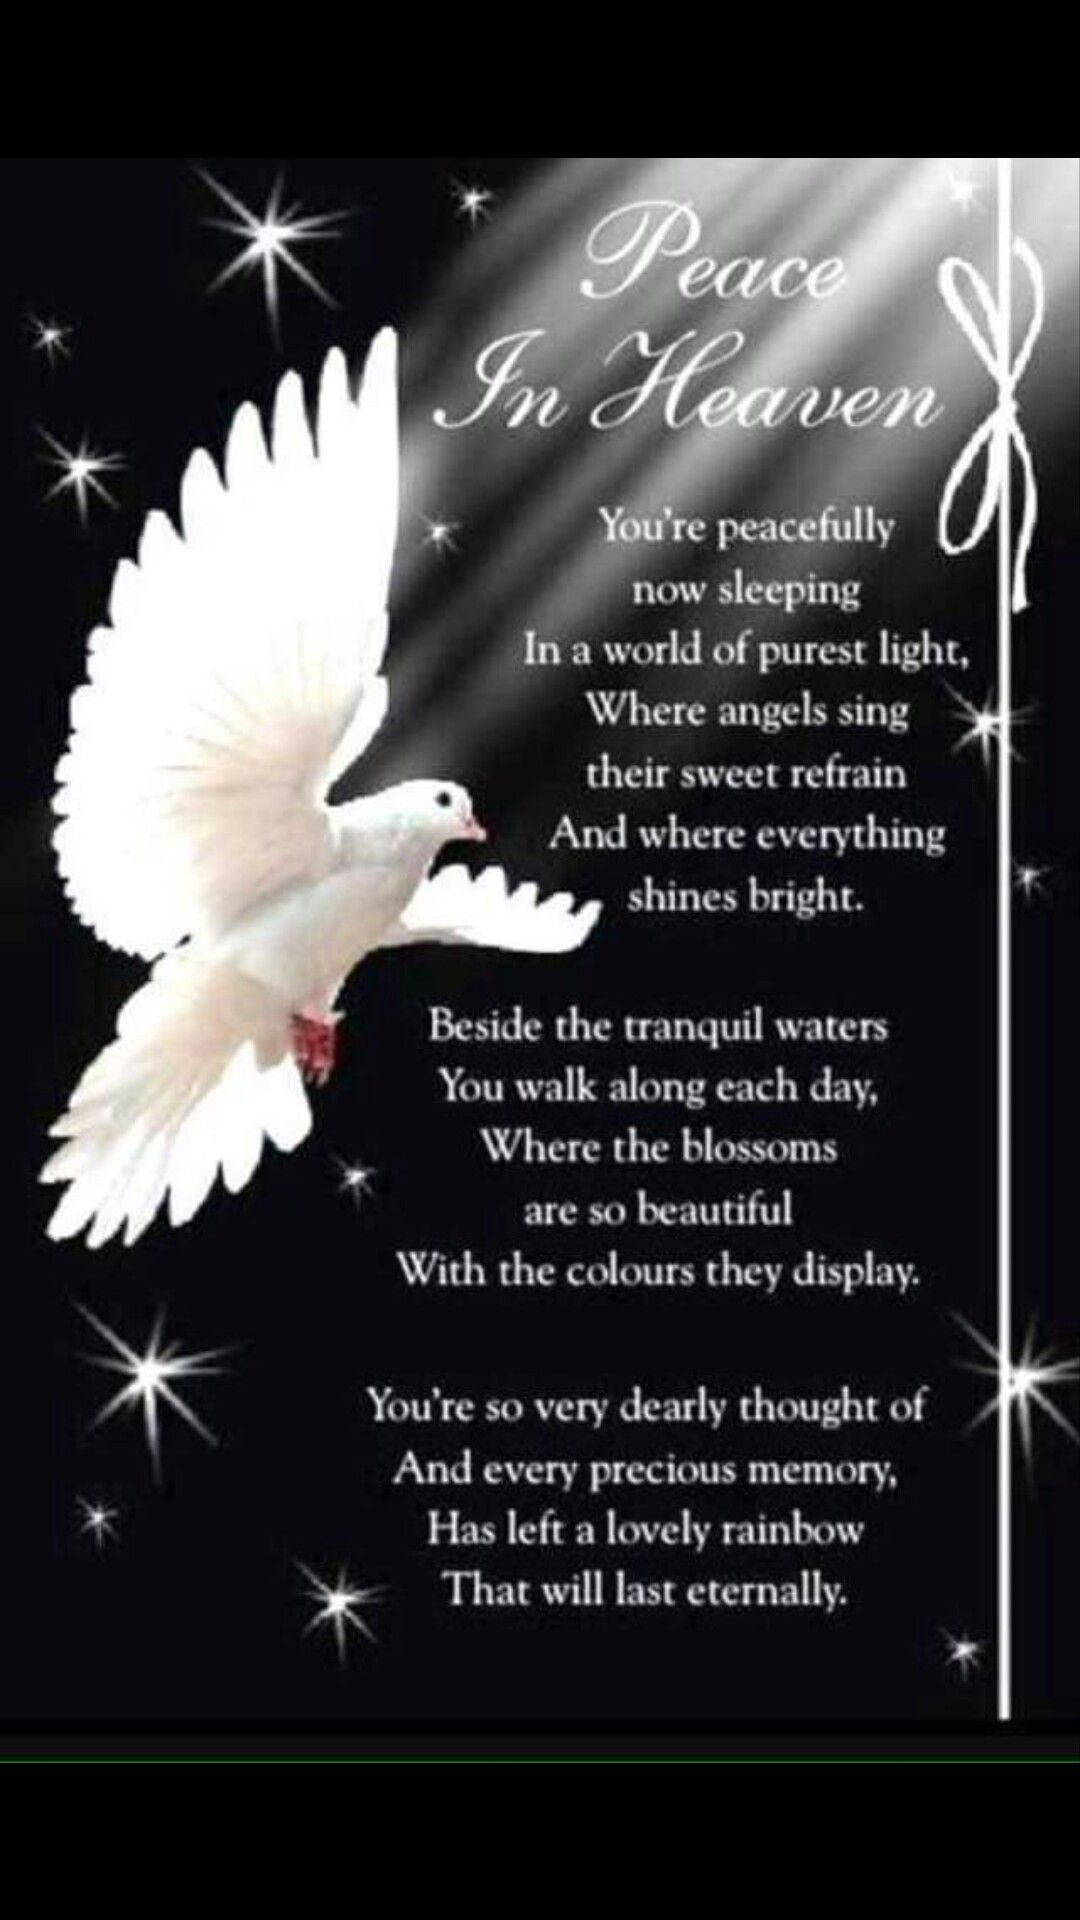 Pin by Tracey Ortiz on Mom Mom in heaven, Heaven quotes